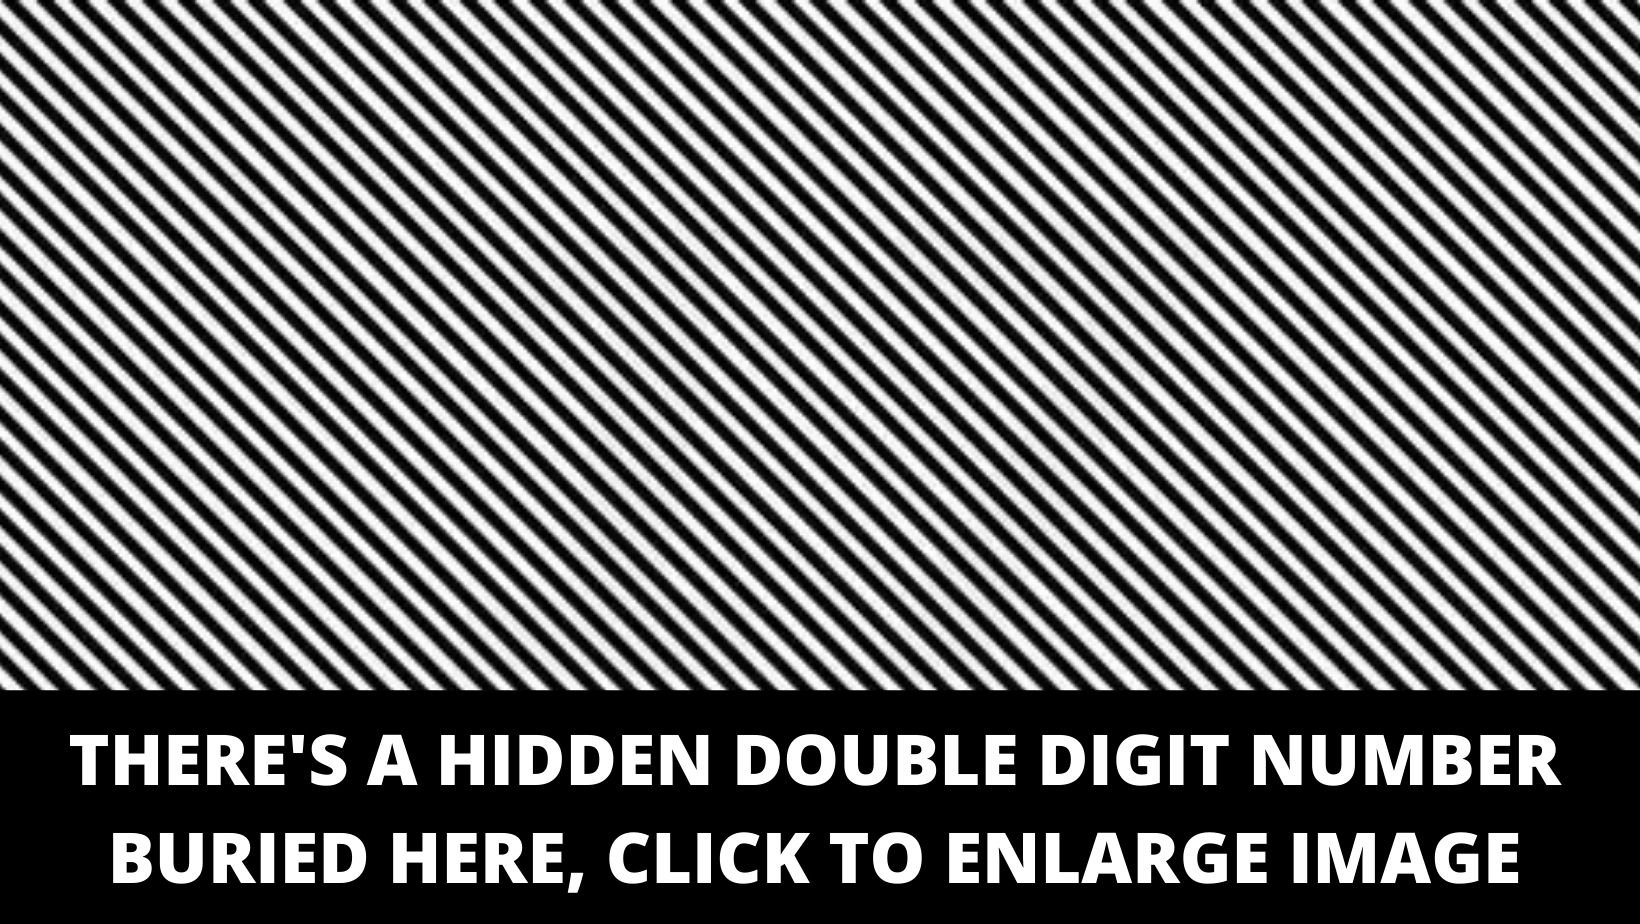 1 157.jpg?resize=412,232 - There Is A Double-Digit Number Buried In This Optical Illusion, Can You Spot It?